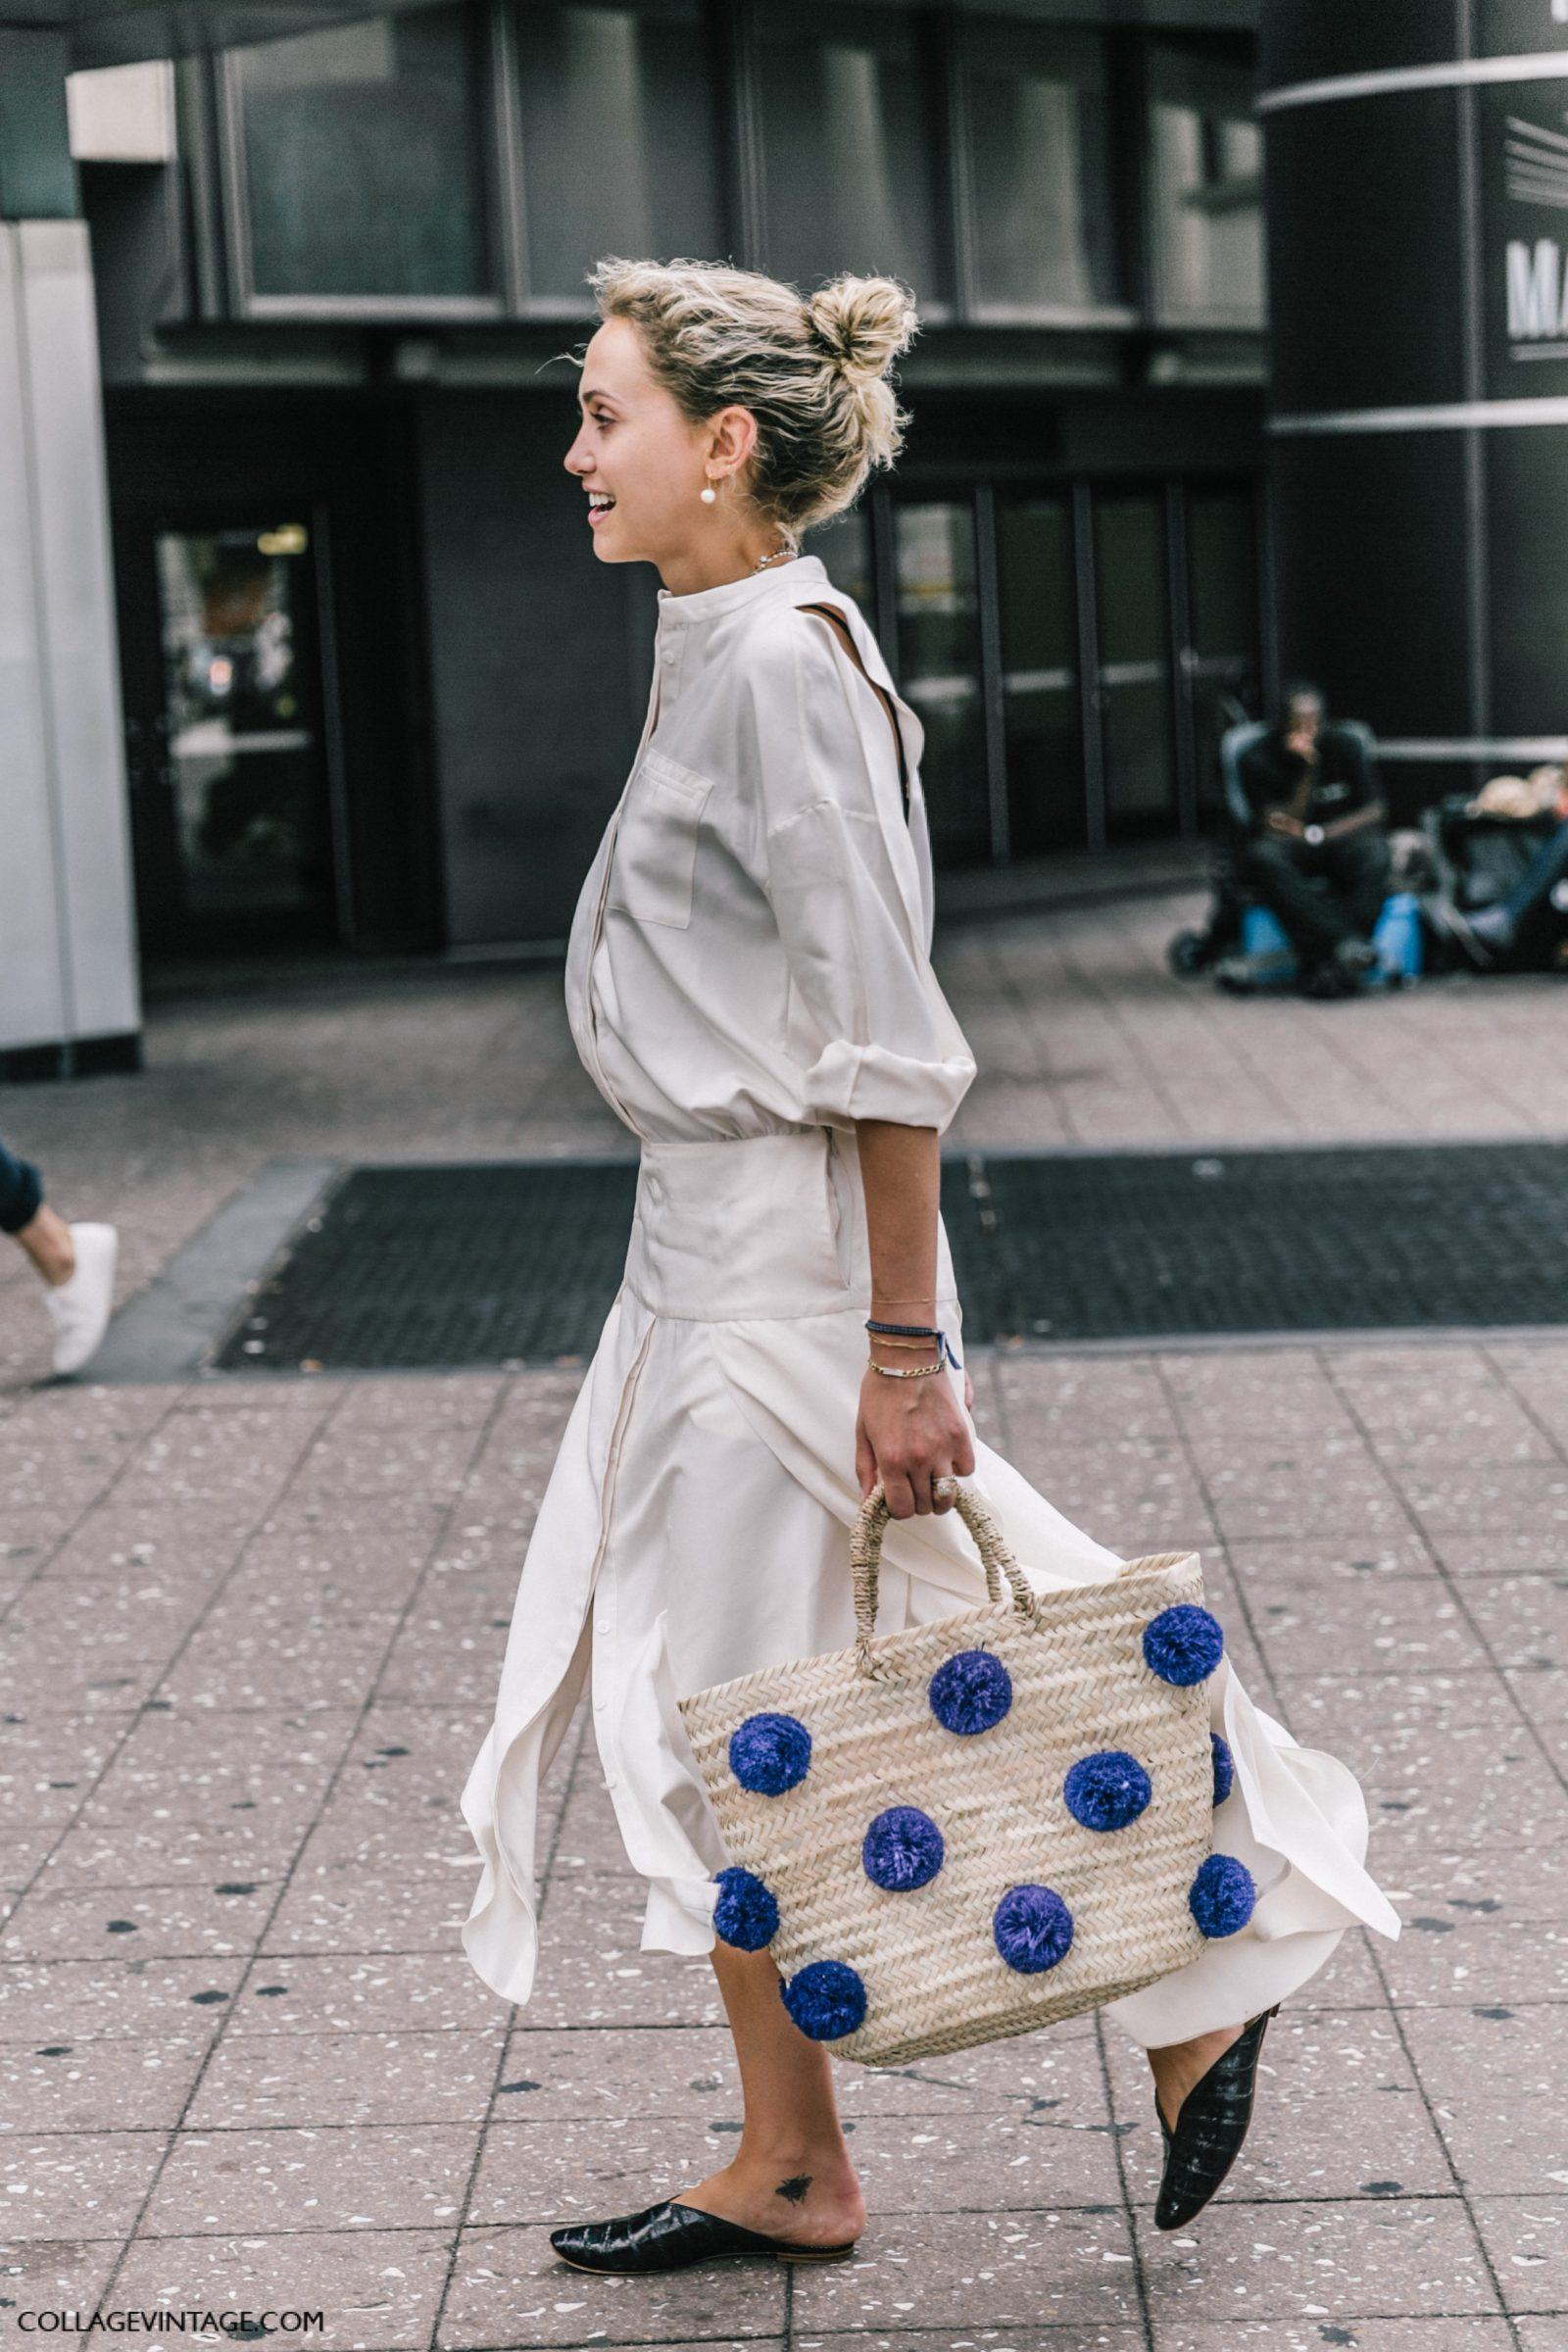 nyfw-new_york_fashion_week_ss17-street_style-outfits-collage_vintage-vintage-tome-123